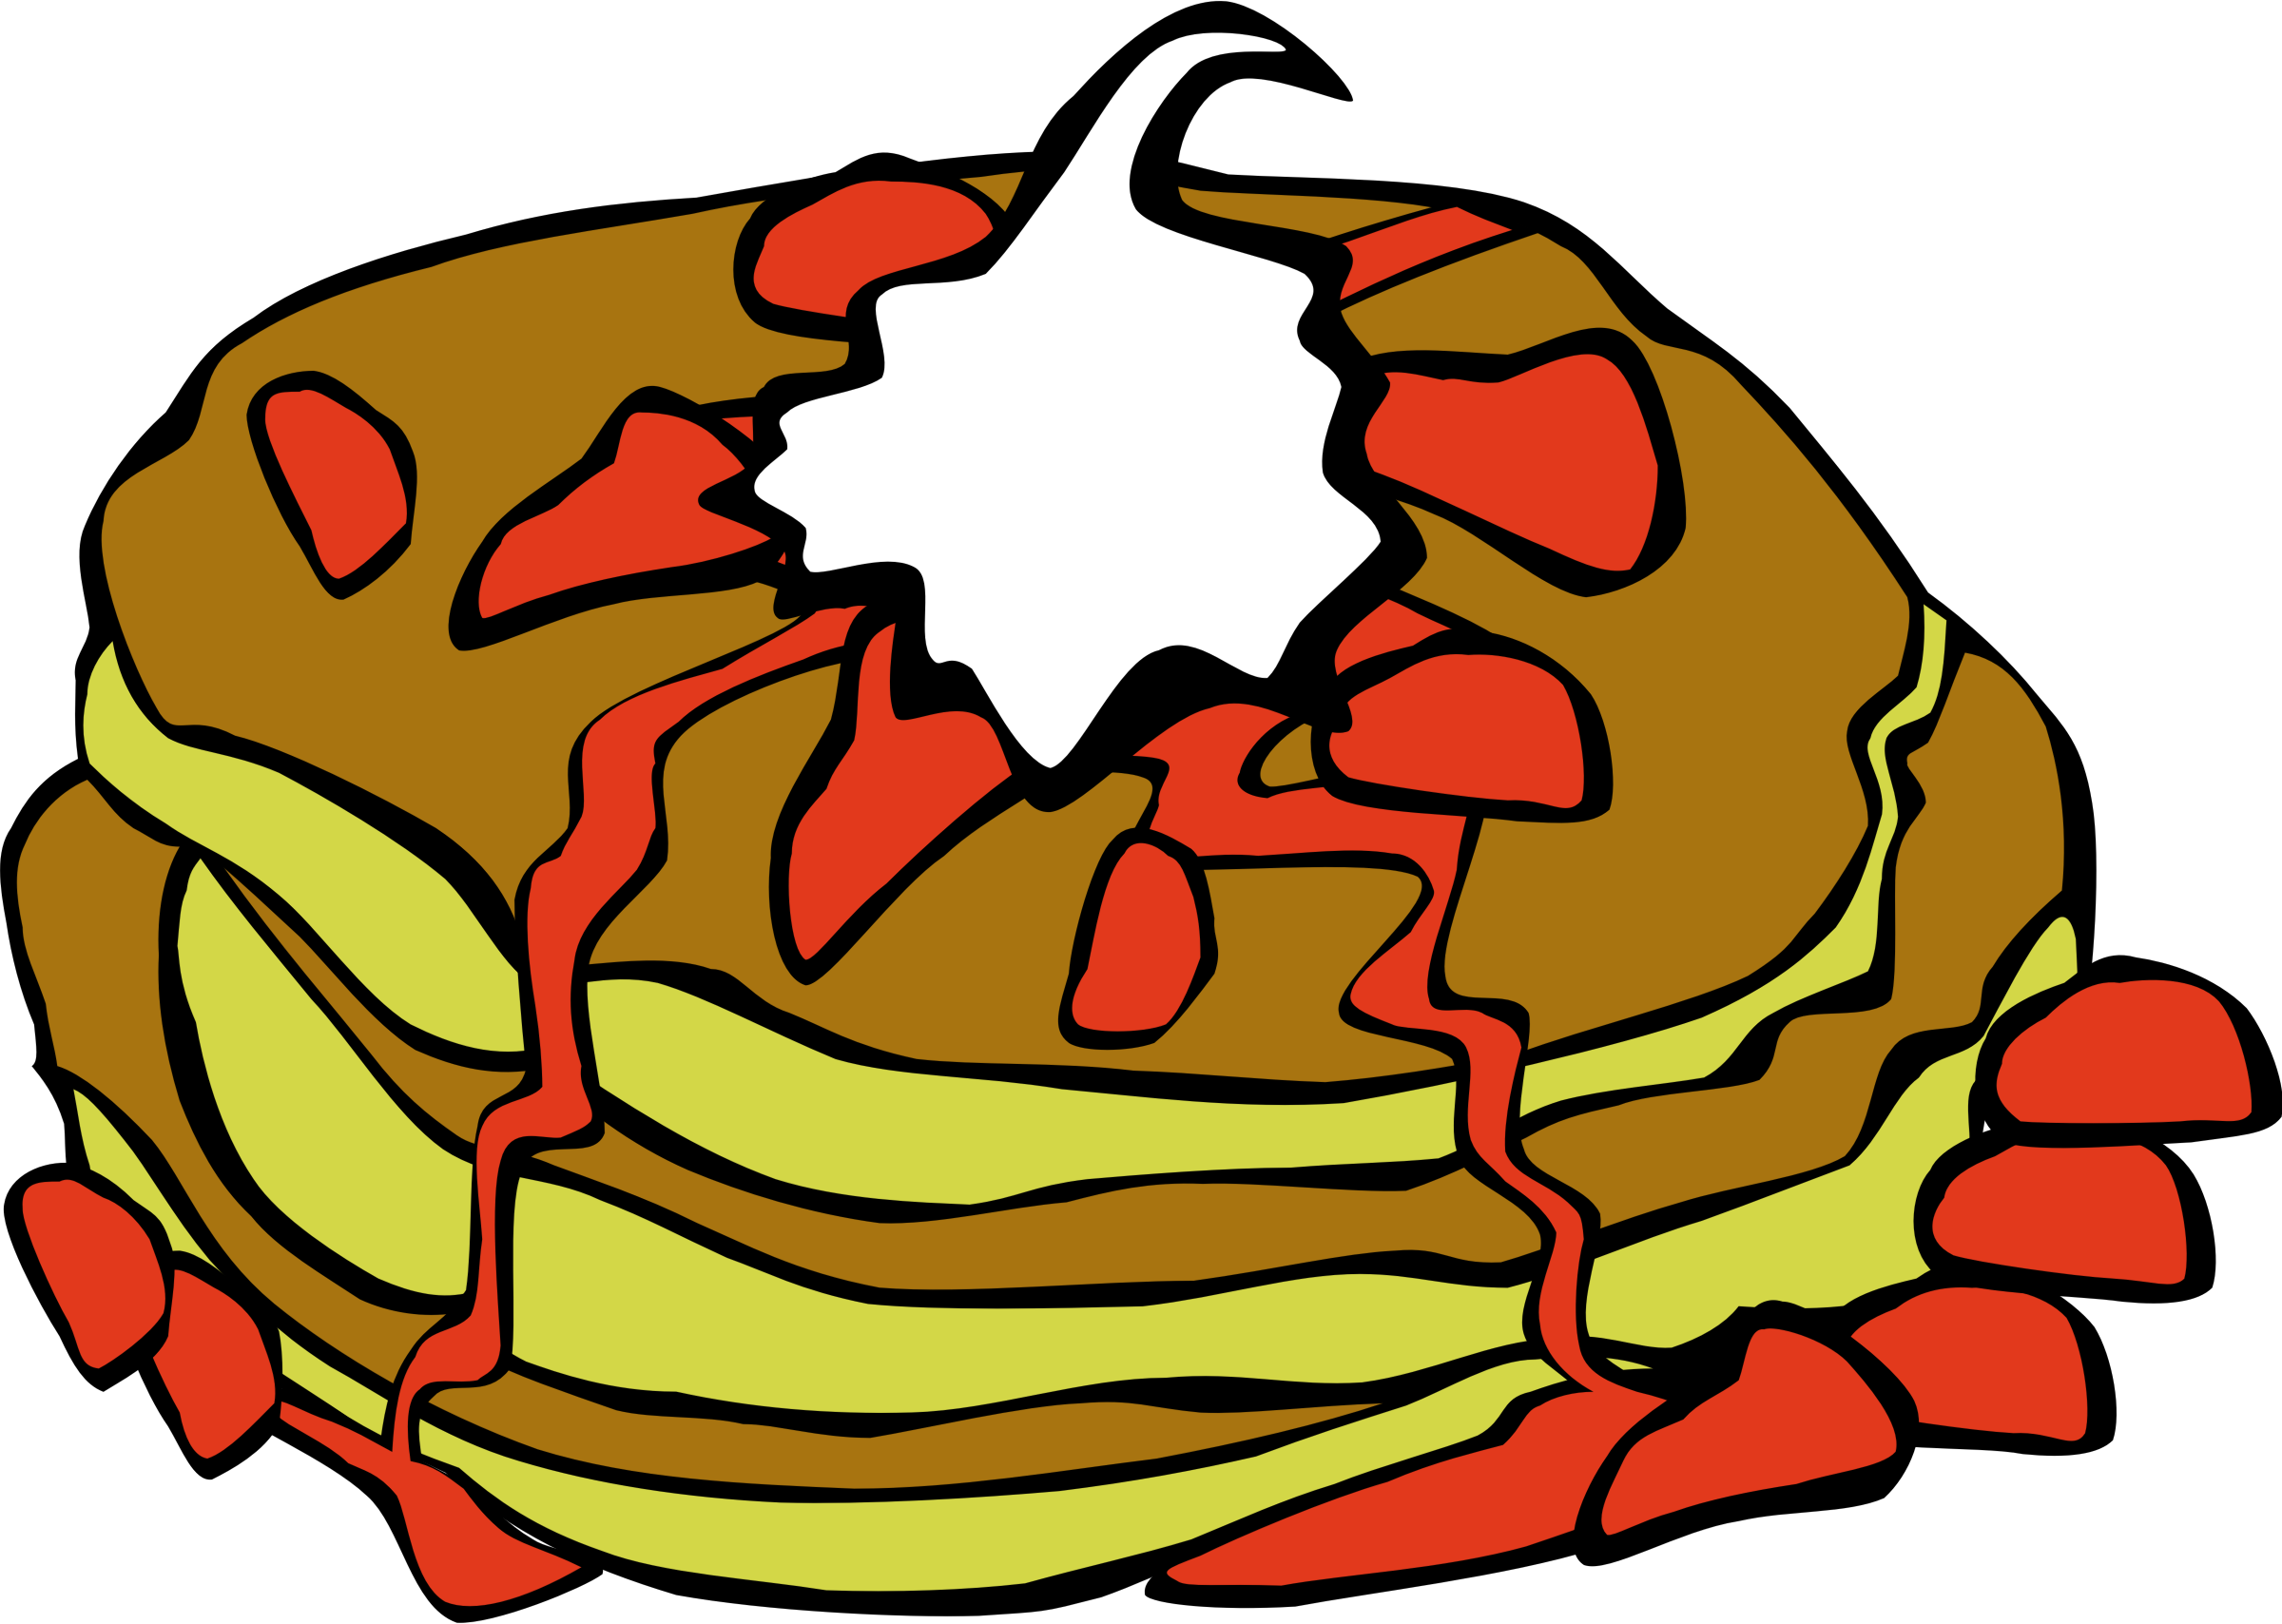 Fast food pancakes image. Pancake clipart big breakfast graphic freeuse